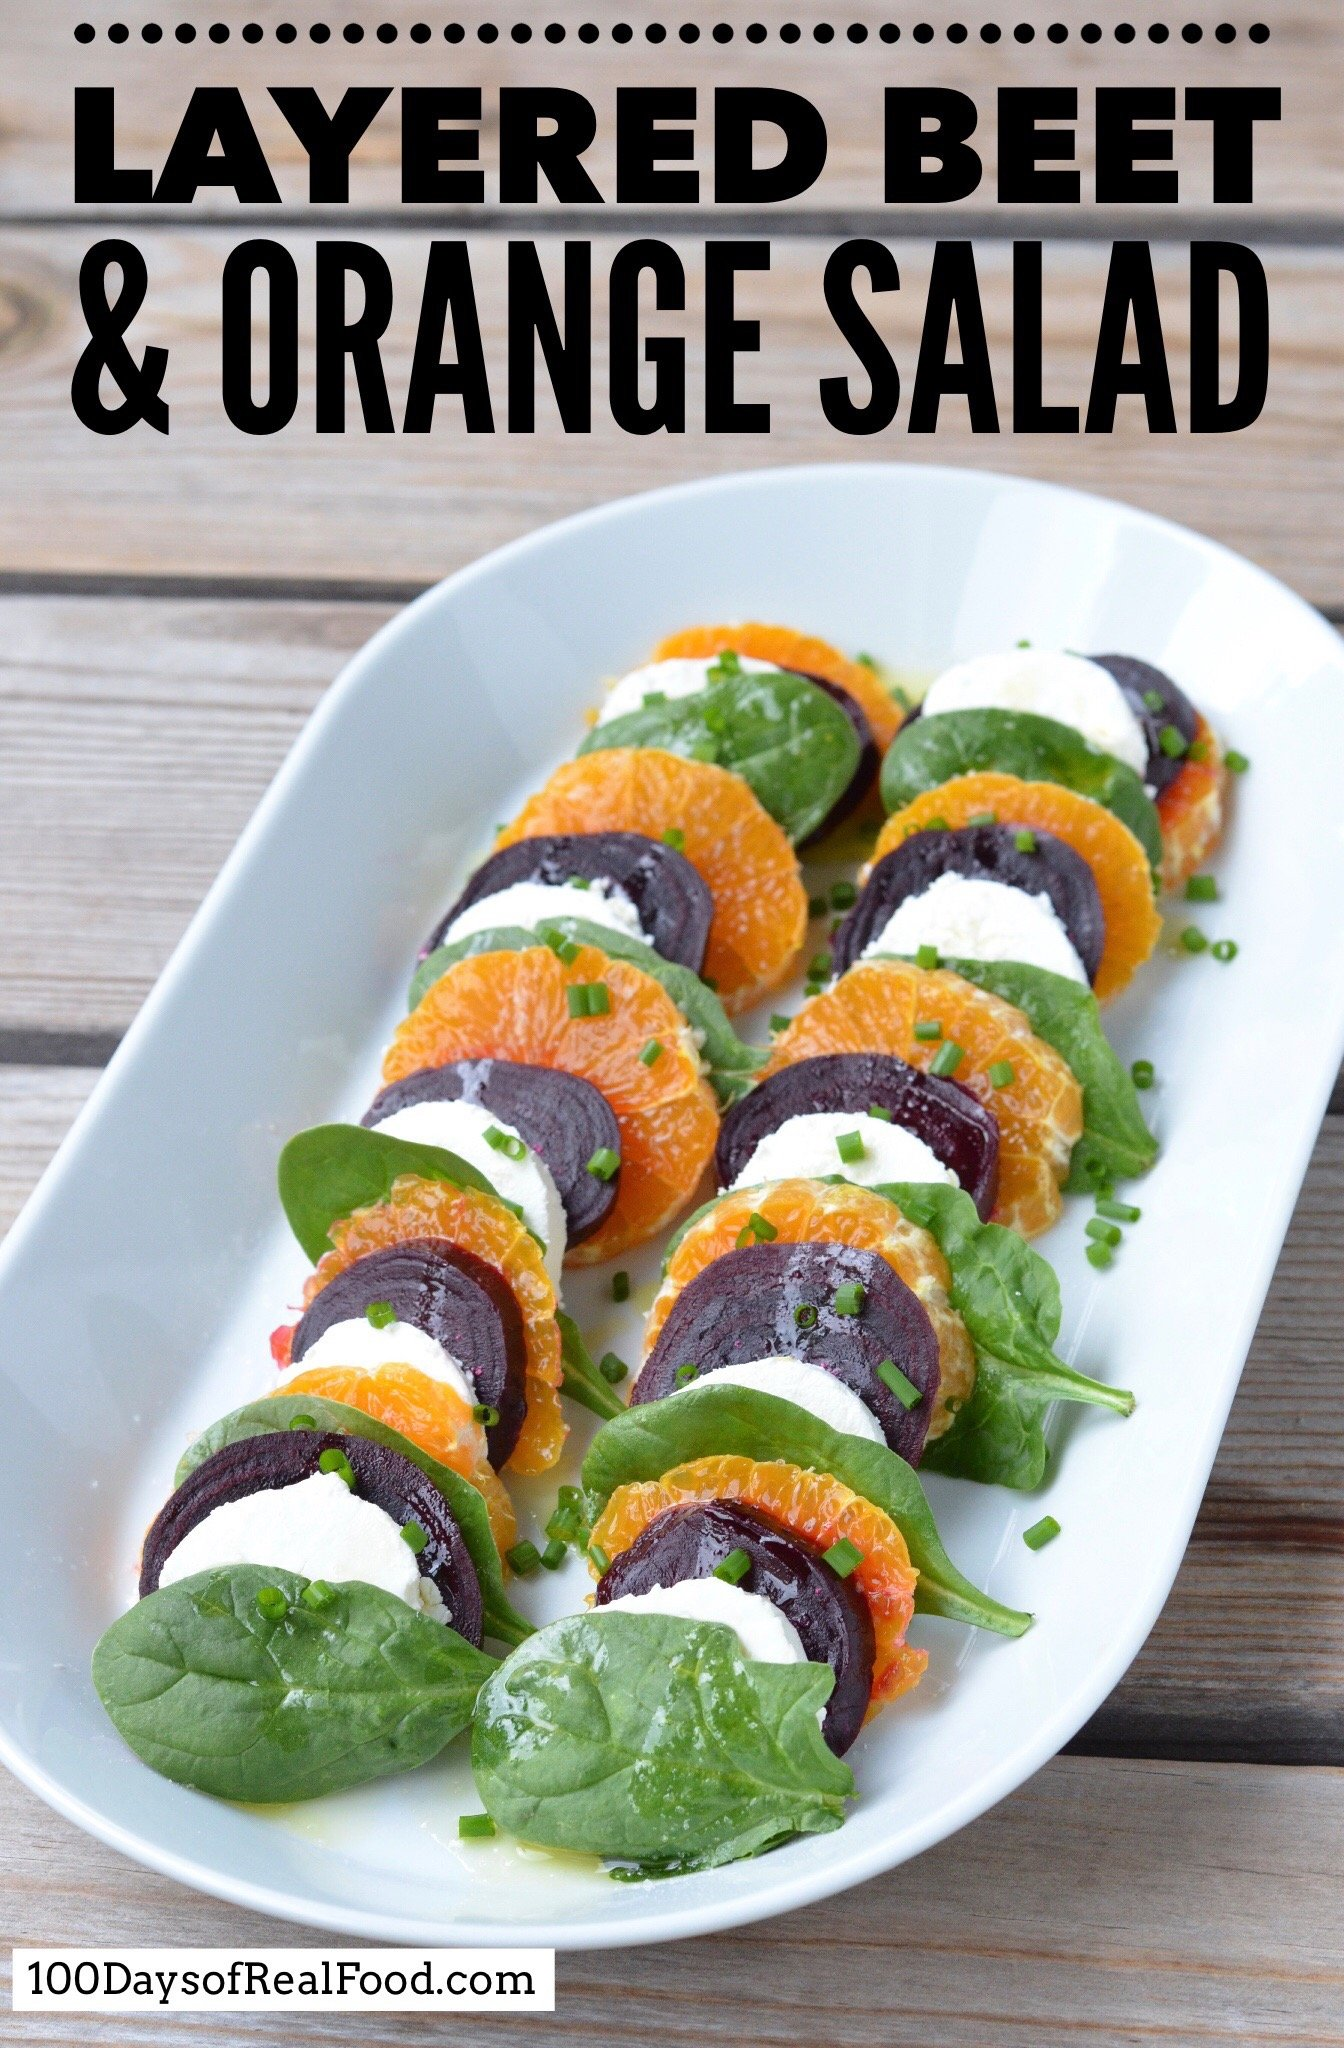 Layered beet, goat cheese, orange, and spinach salad on 100 Days of Real Food.